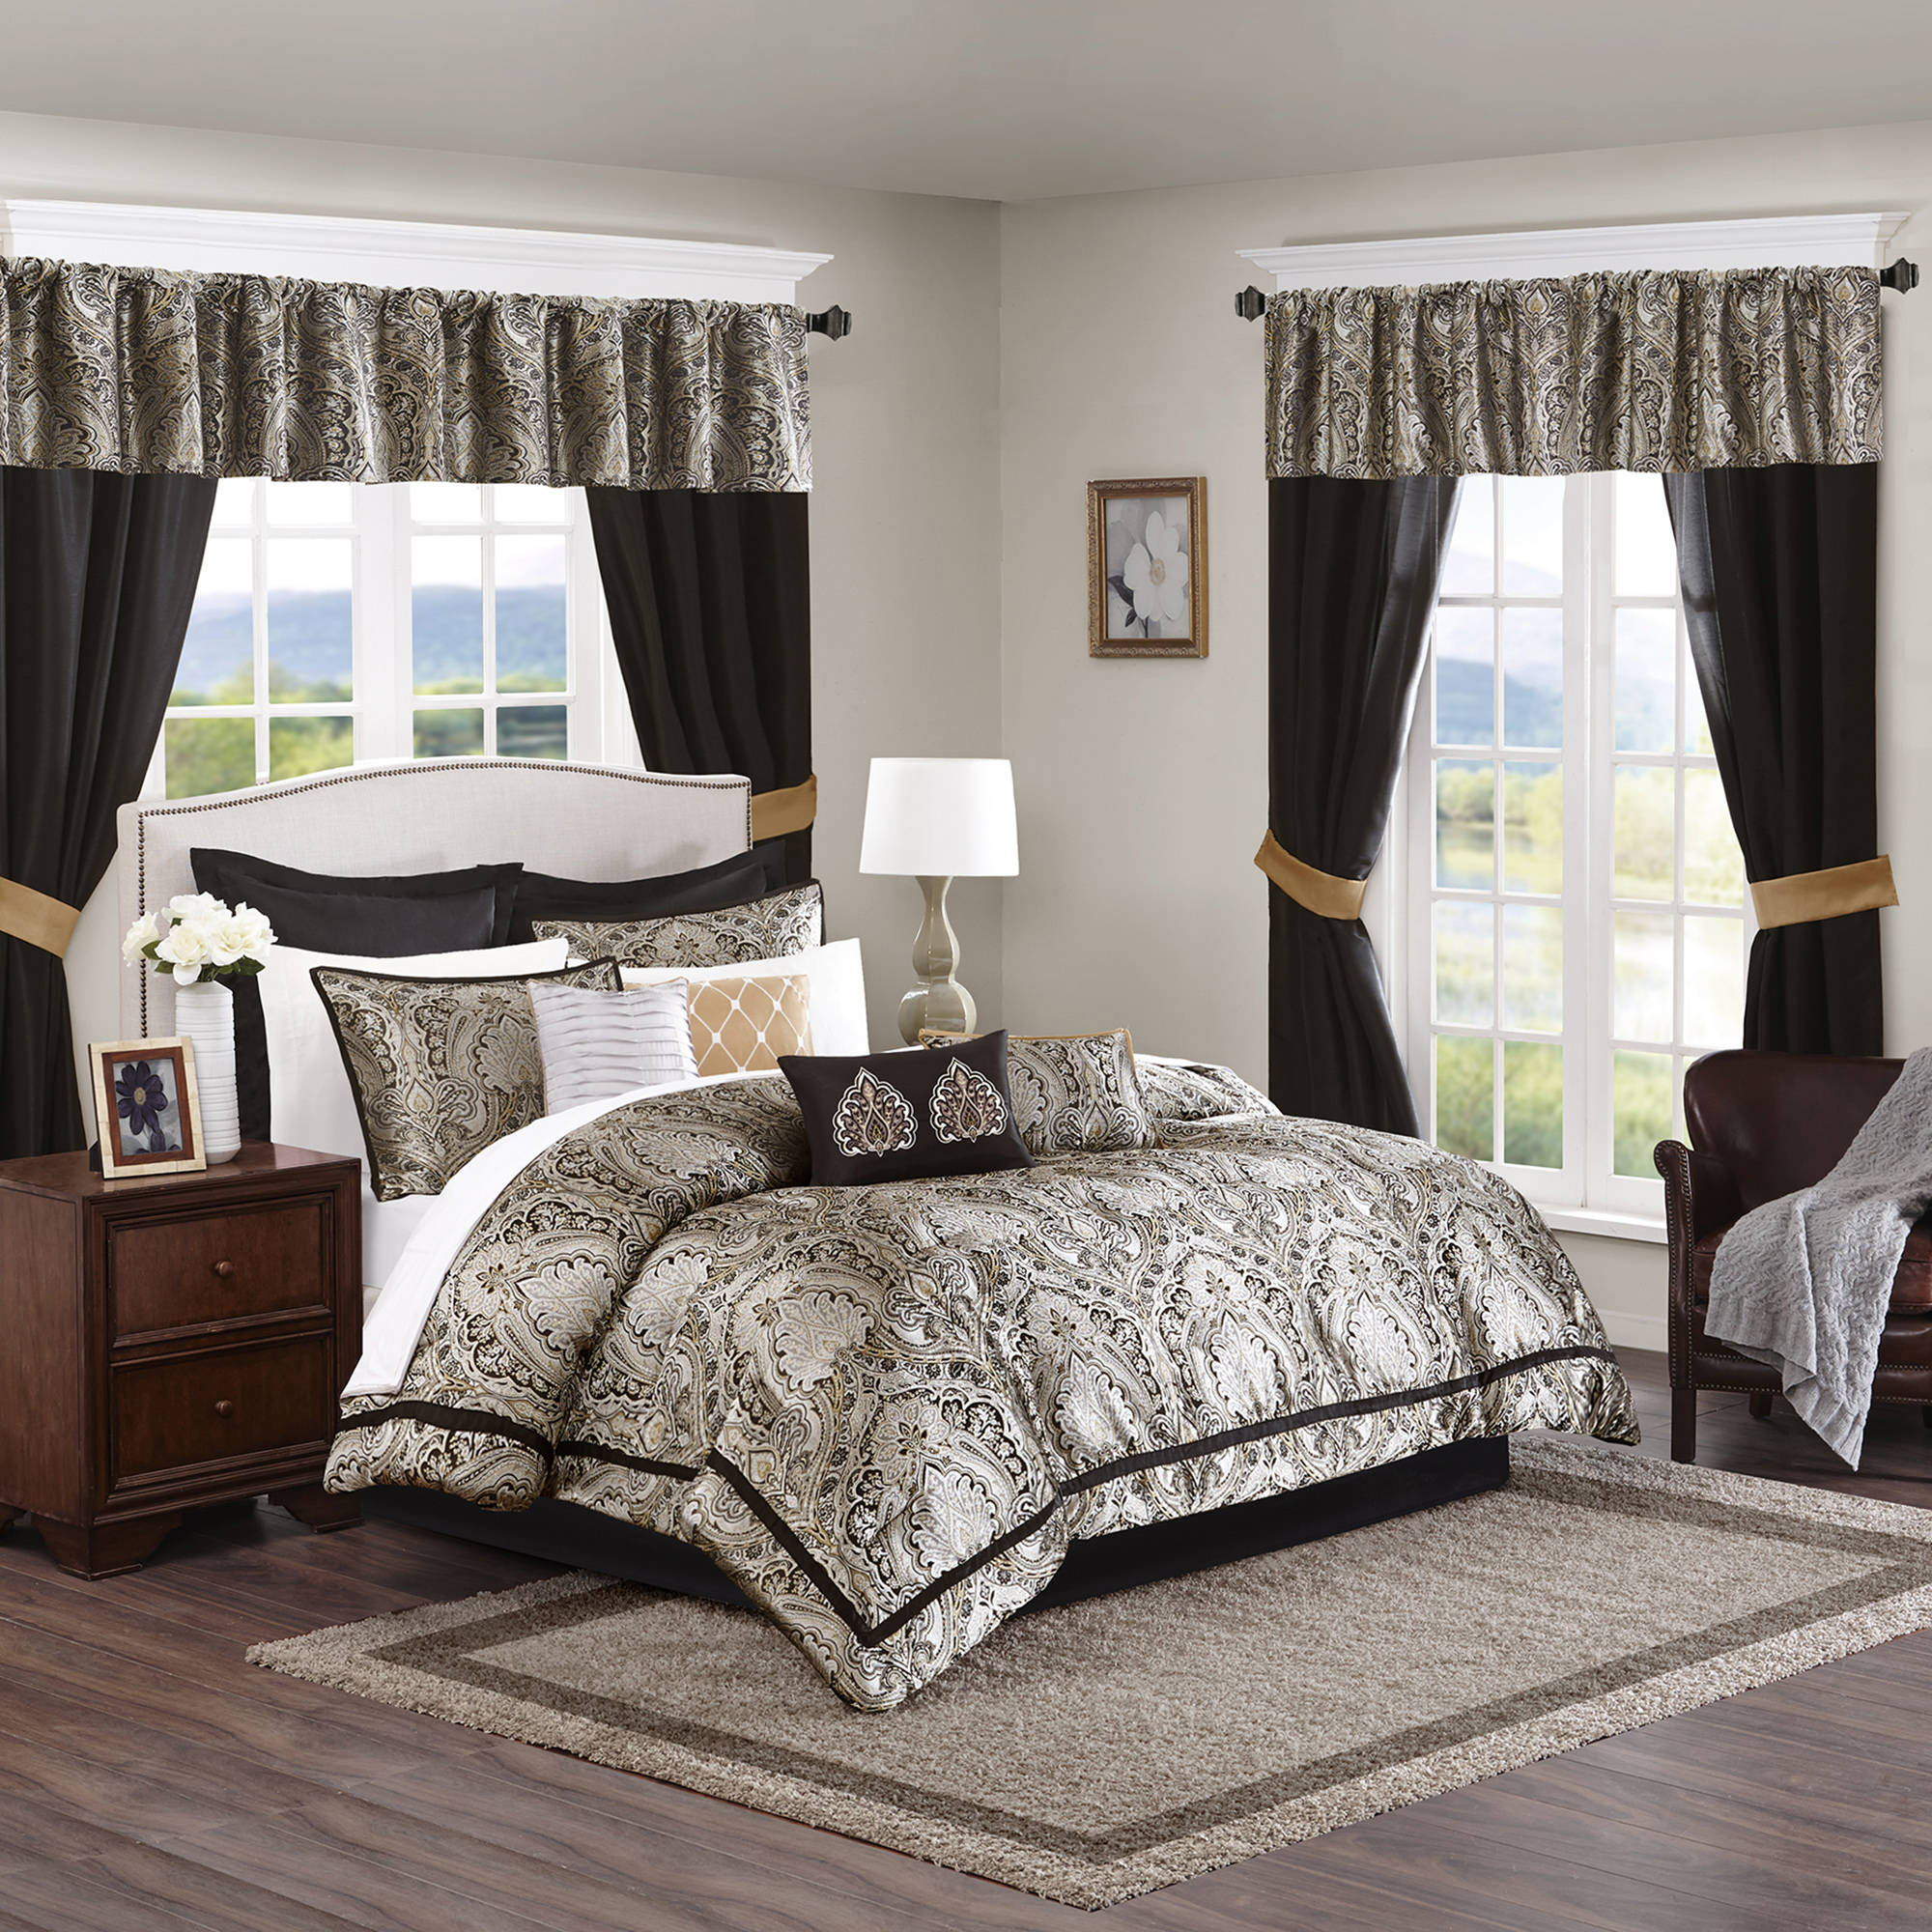 Home Essence Tracy Room in a Bag Comforter Bedding Set